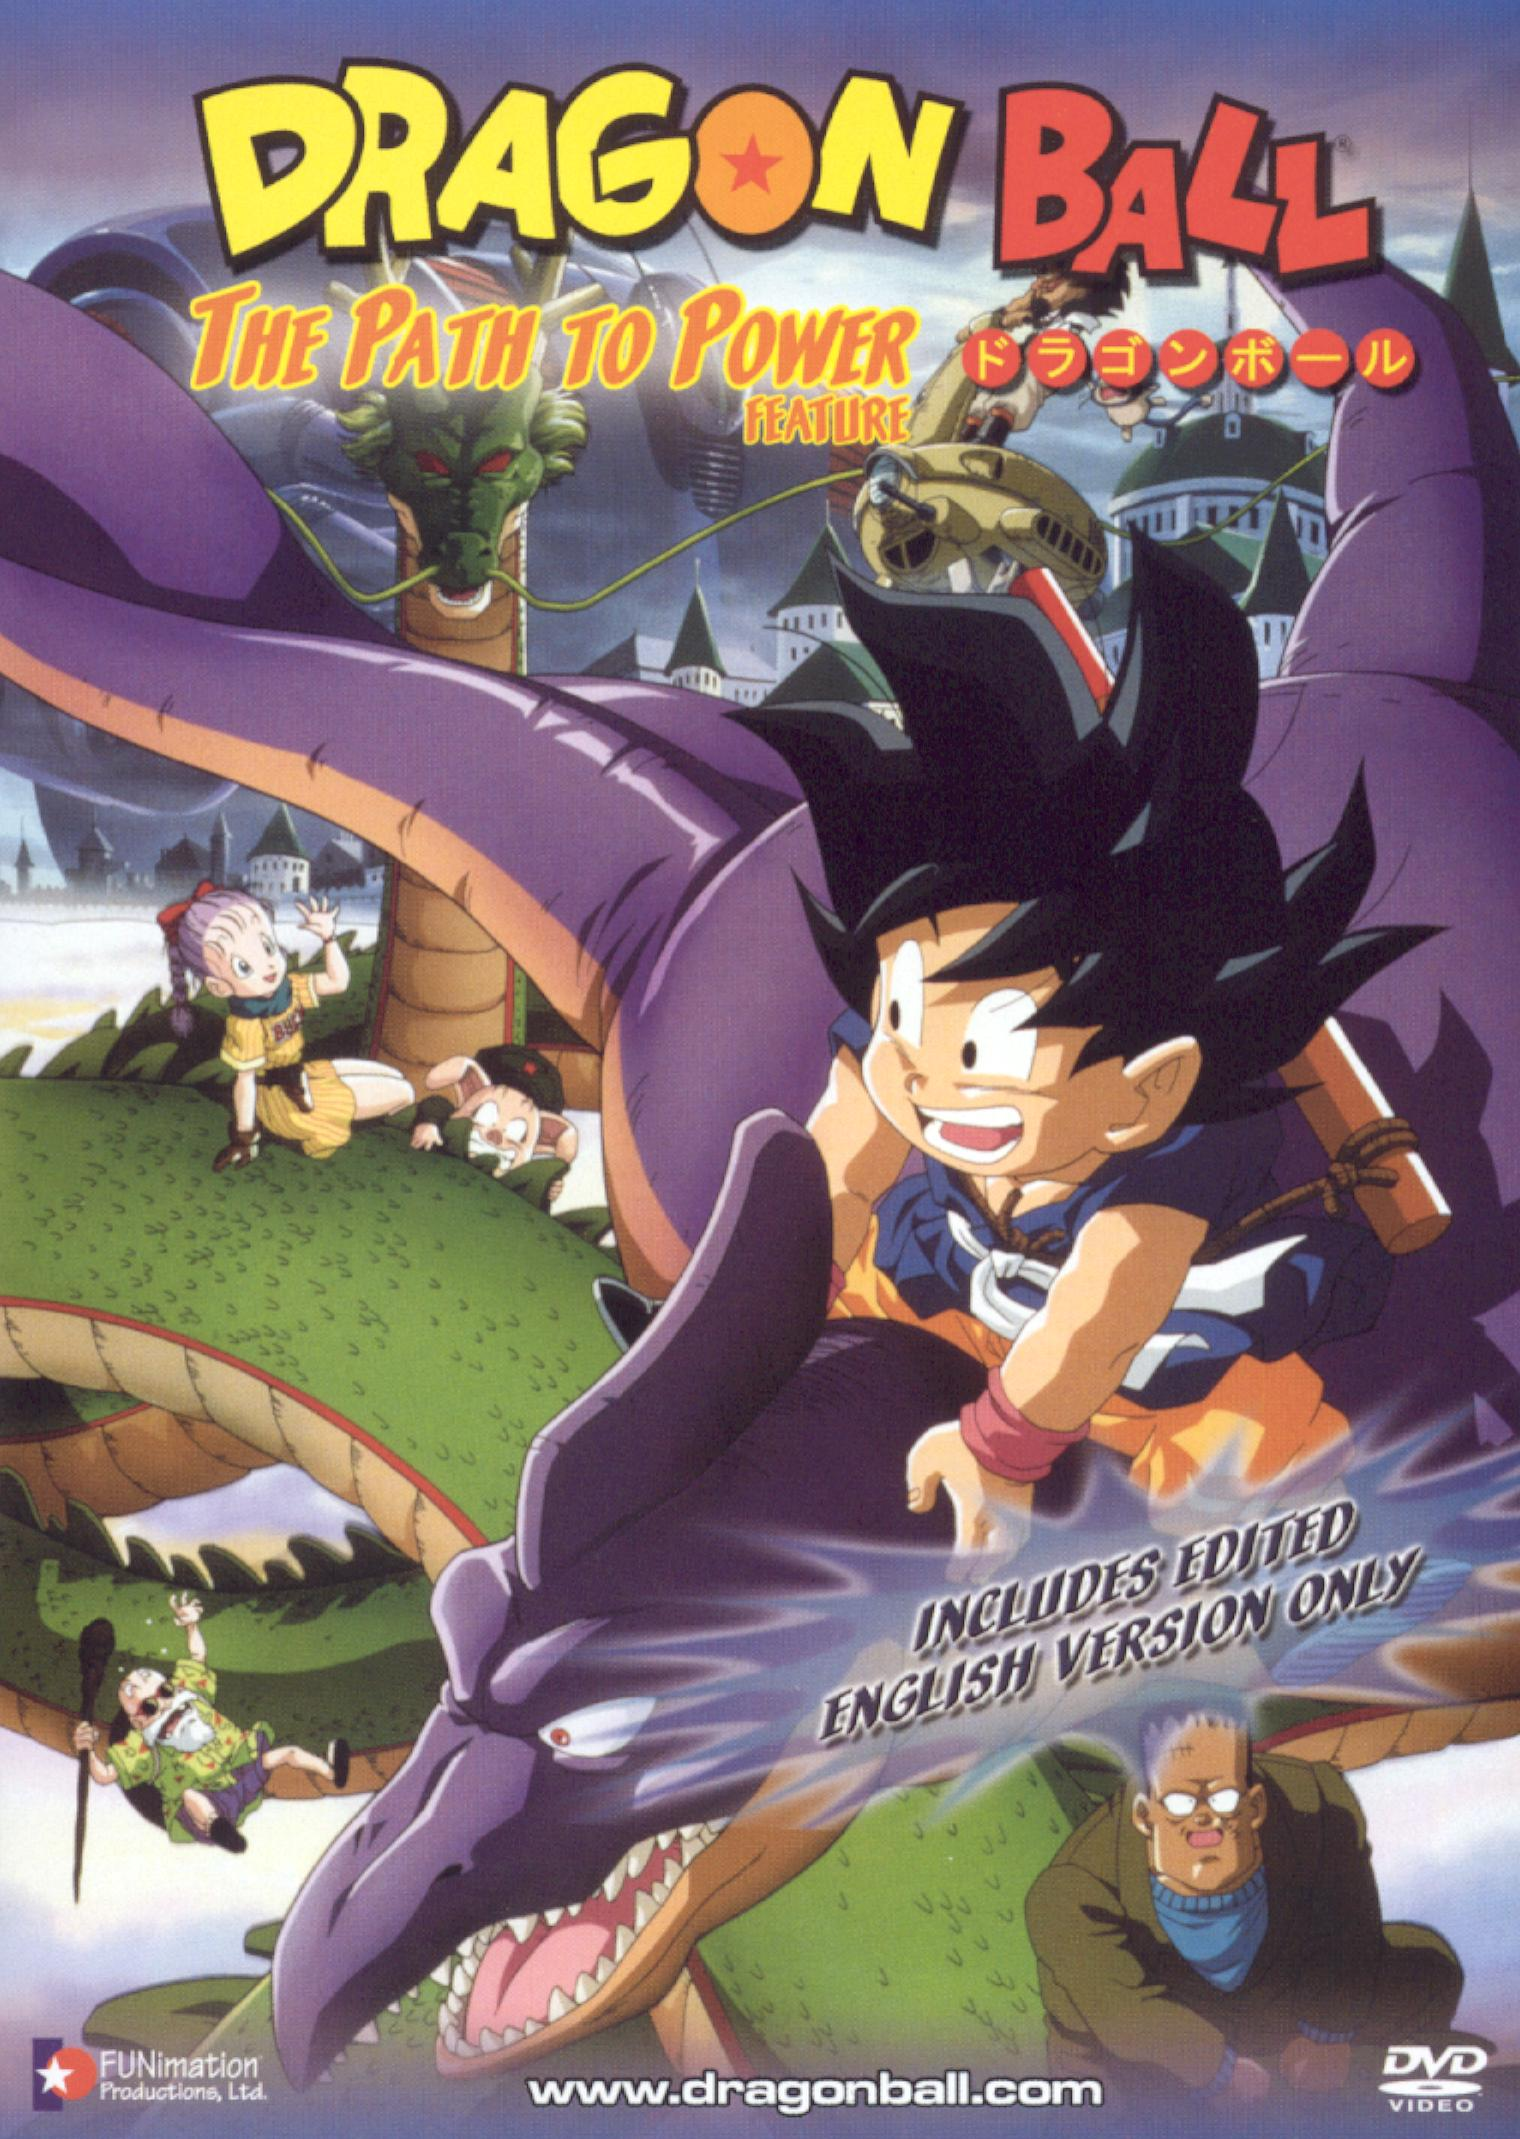 DragonBall: The Path to Power